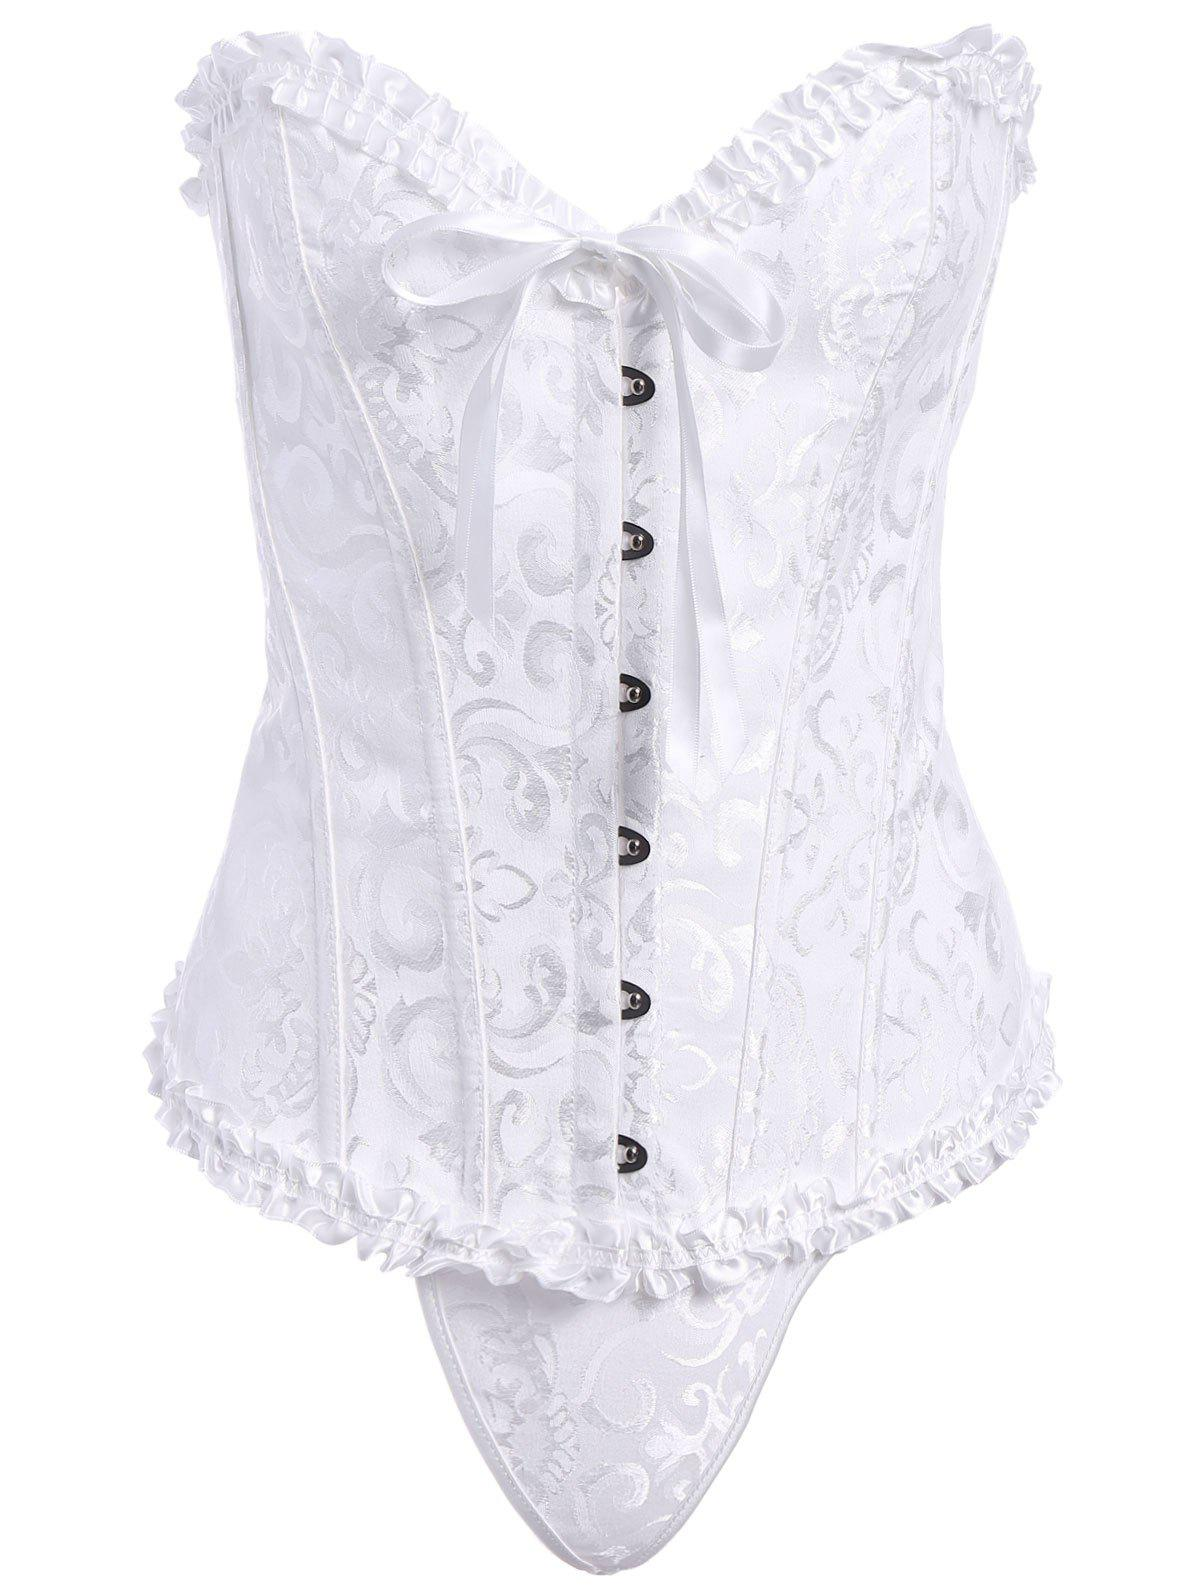 Charming Bowknot Design Lace-Up Corset and Panties Twinset For Women - WHITE L